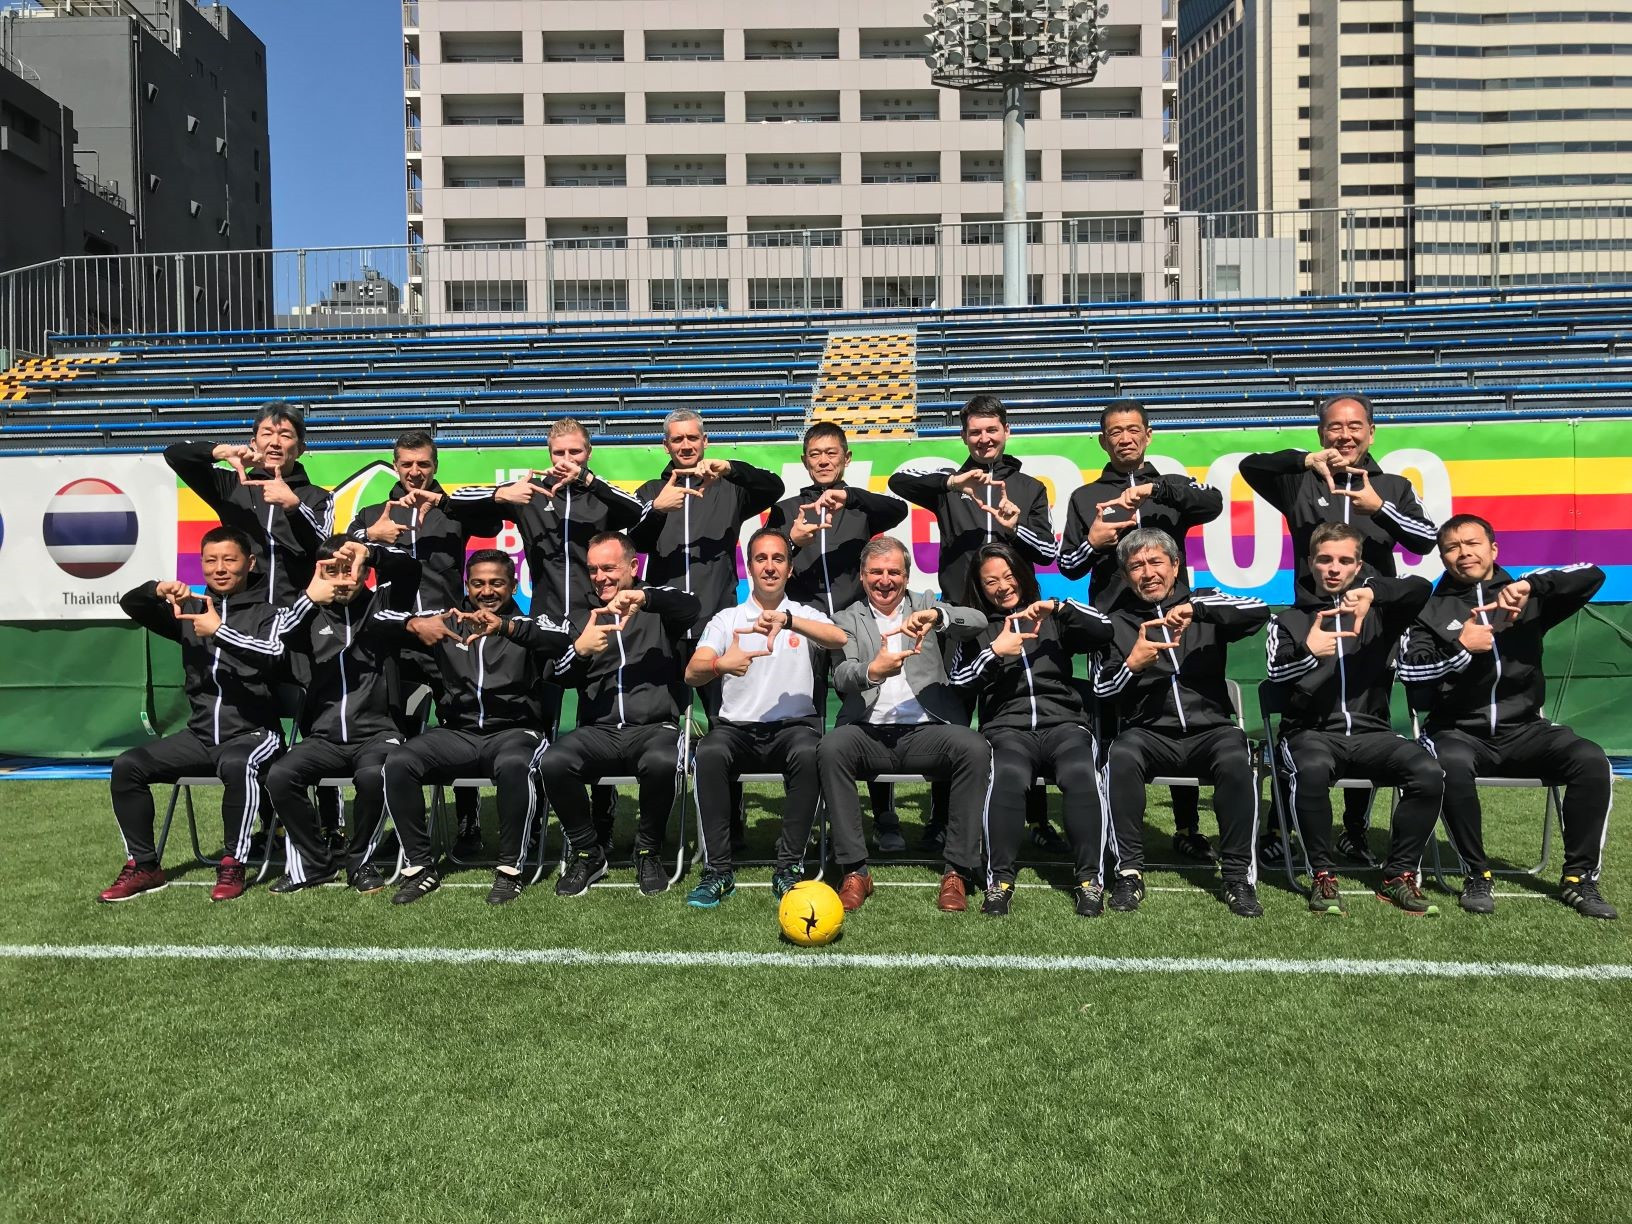 Referees also got involved with the Play True 2020 activities in Tokyo ©IBSA